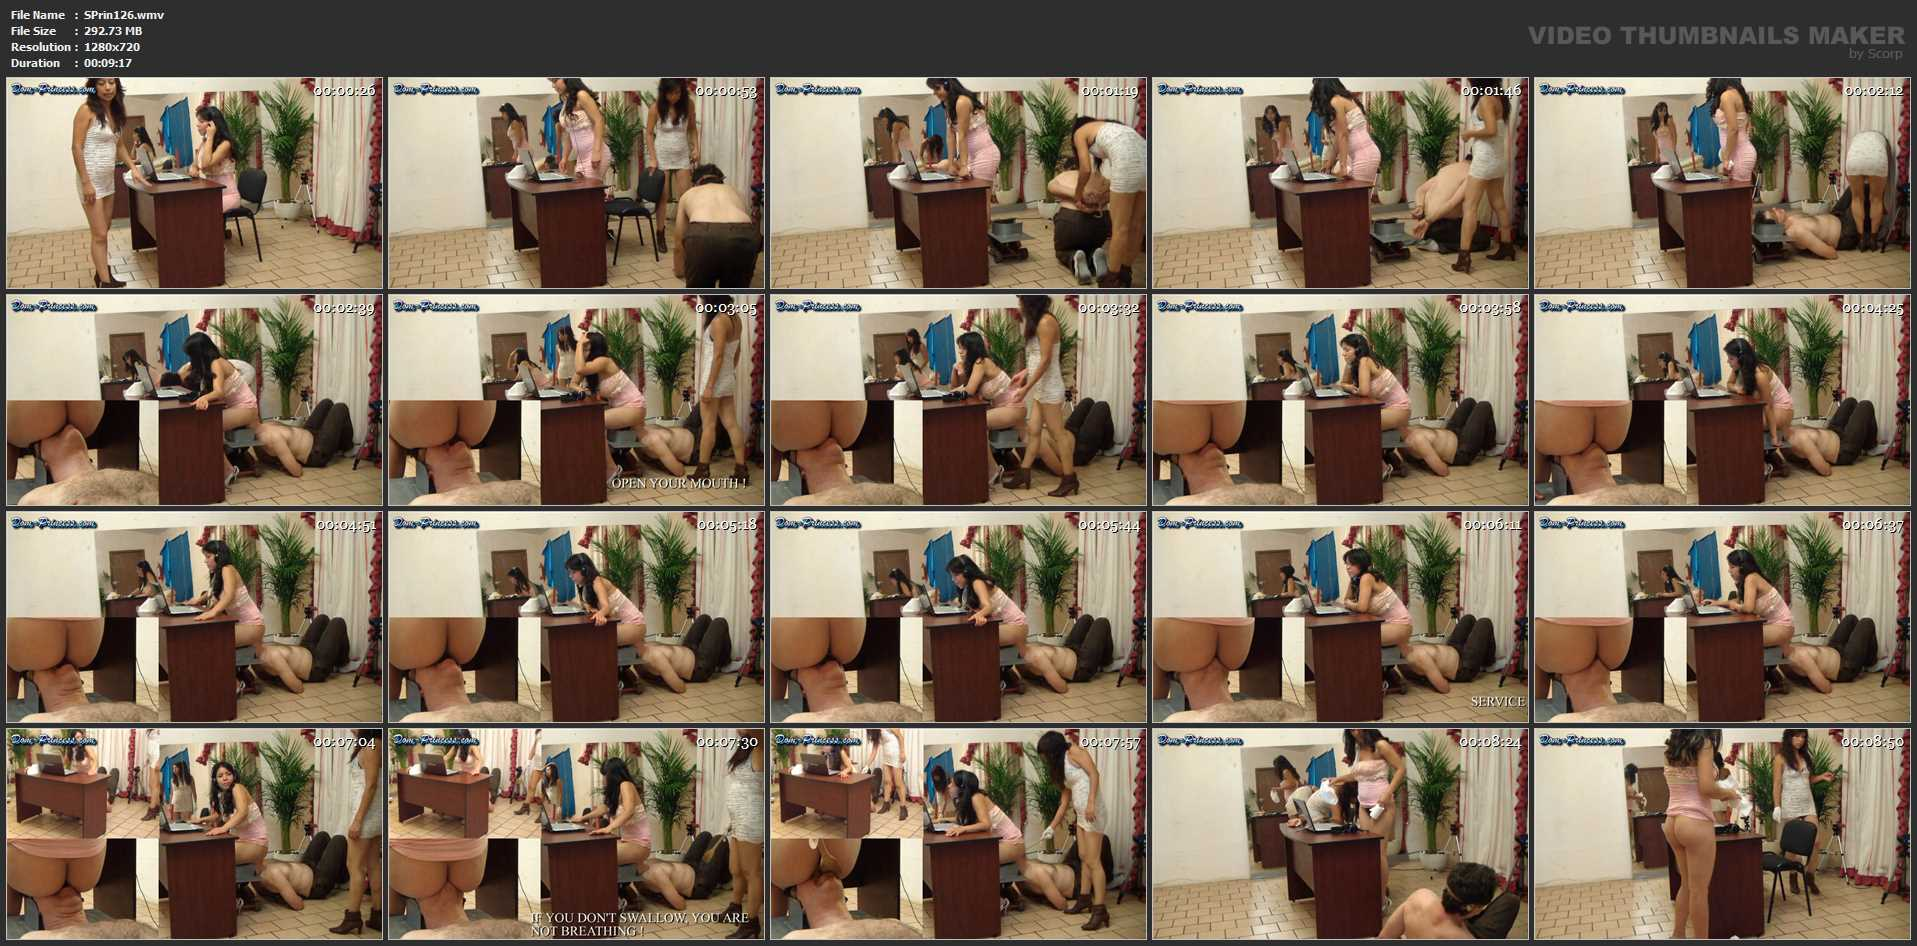 [SCAT-PRINCESS] Another Day in the Office Part 15 Adison [HD][720p][WMV]